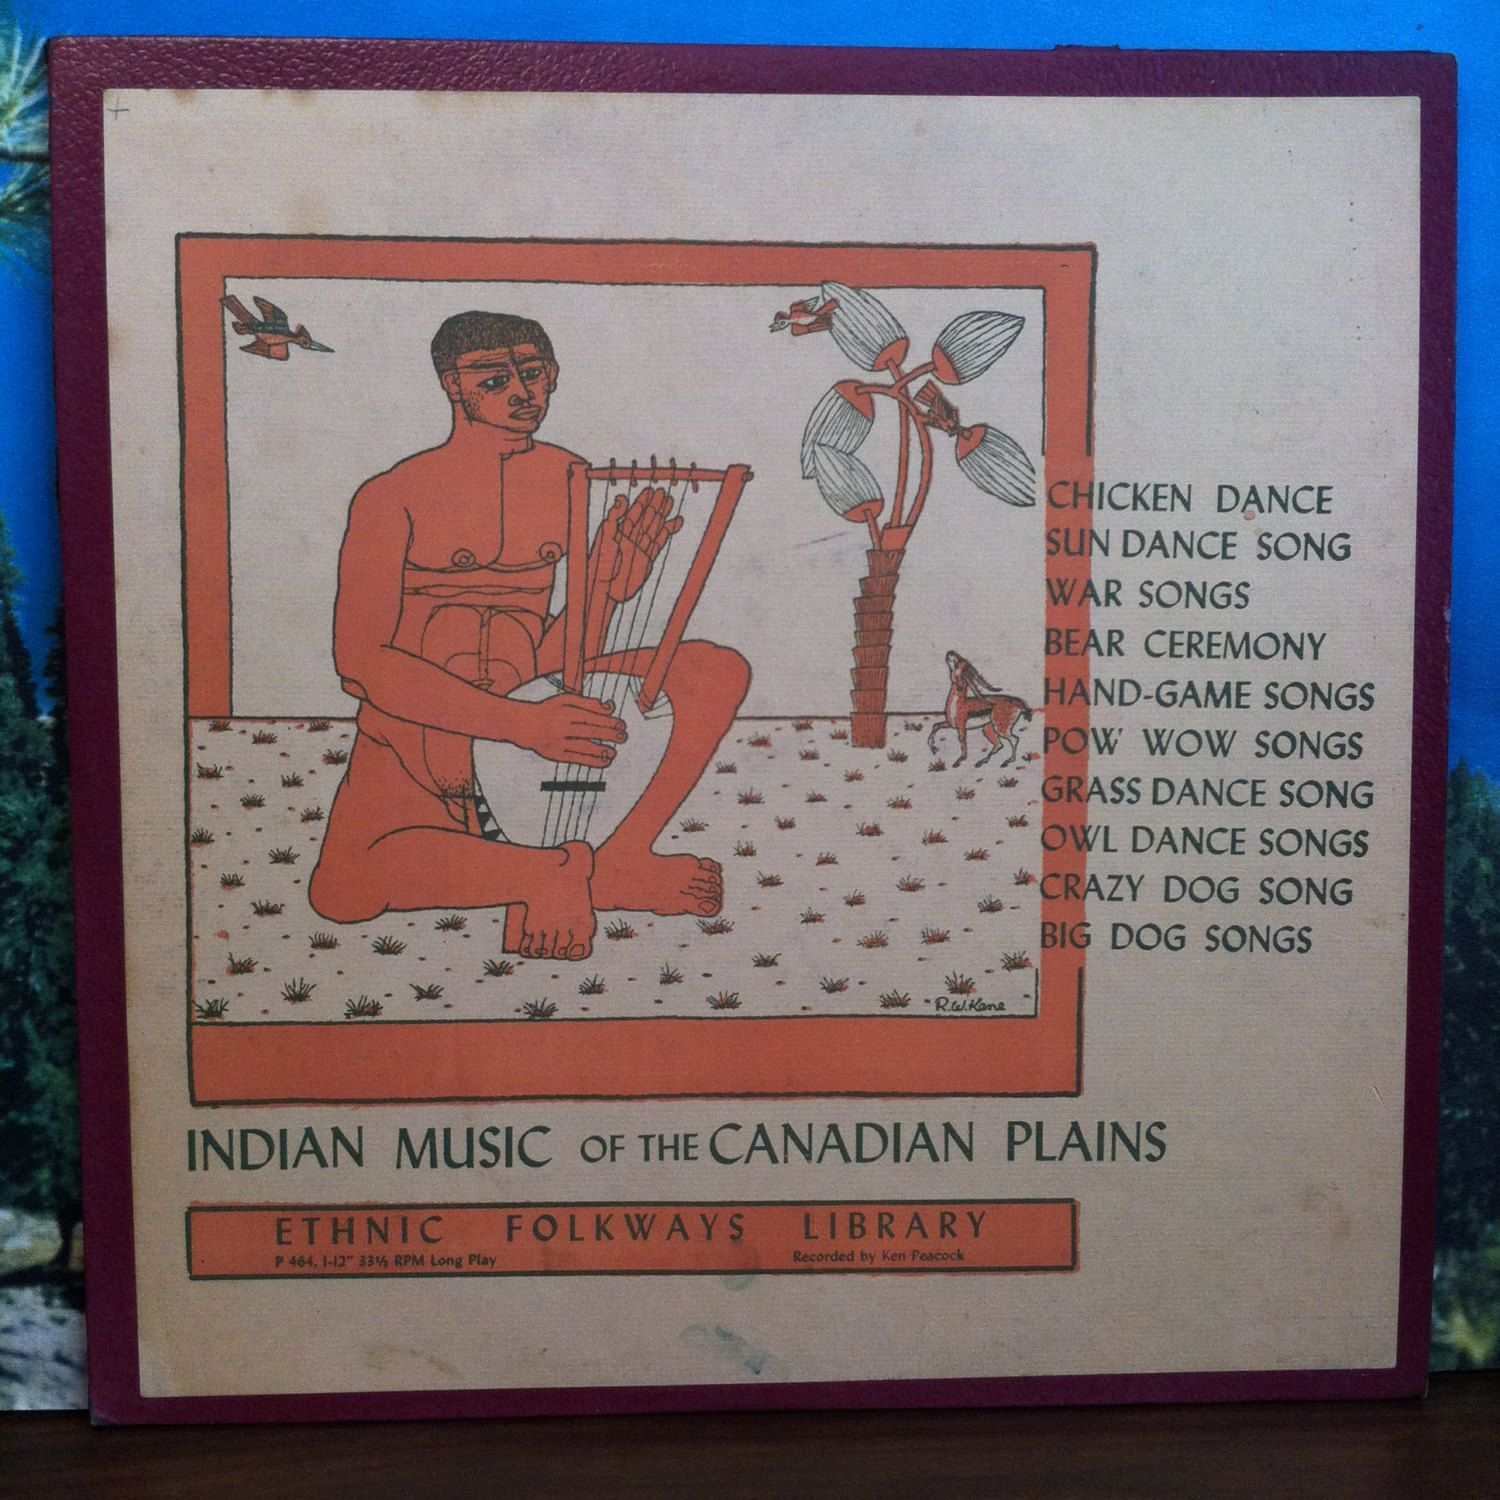 Indian Music of the Canadian Plains Vinyl Record LP 1955 Ethnic Folkways Library Folk Native American by vintagebaronrecords on Etsy